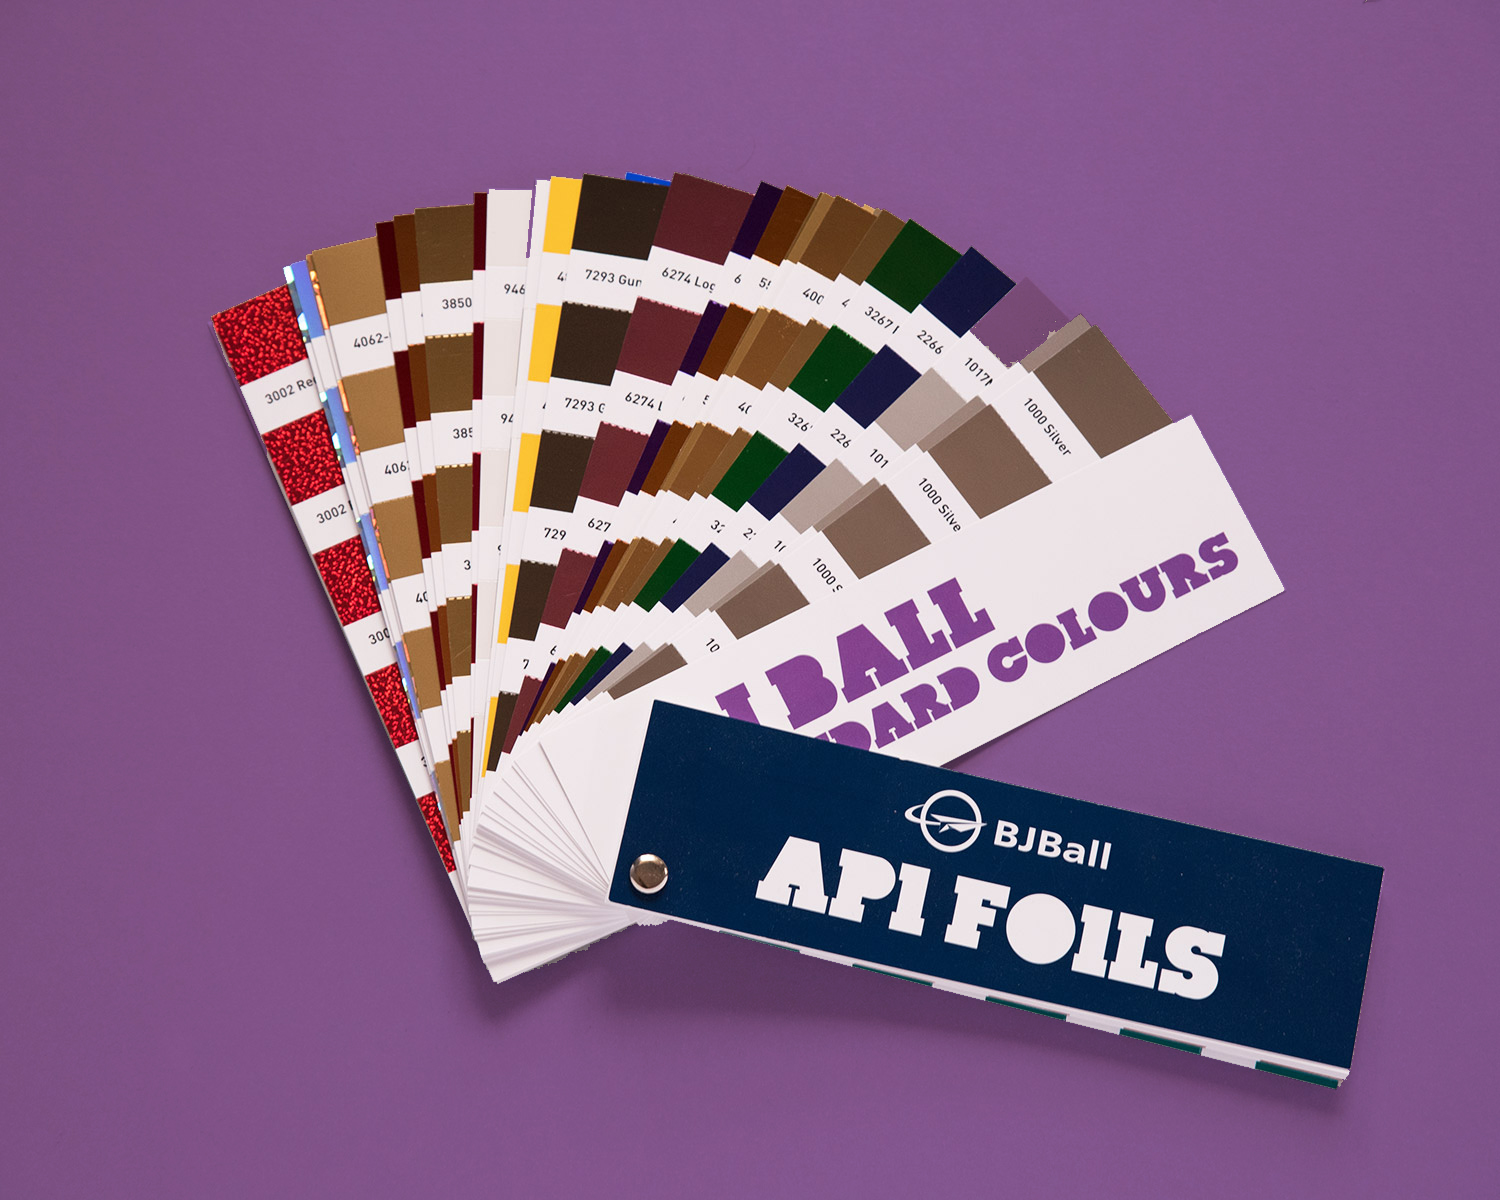 Custom product catalogue designed to promote the API foils range of Ball and Dogget